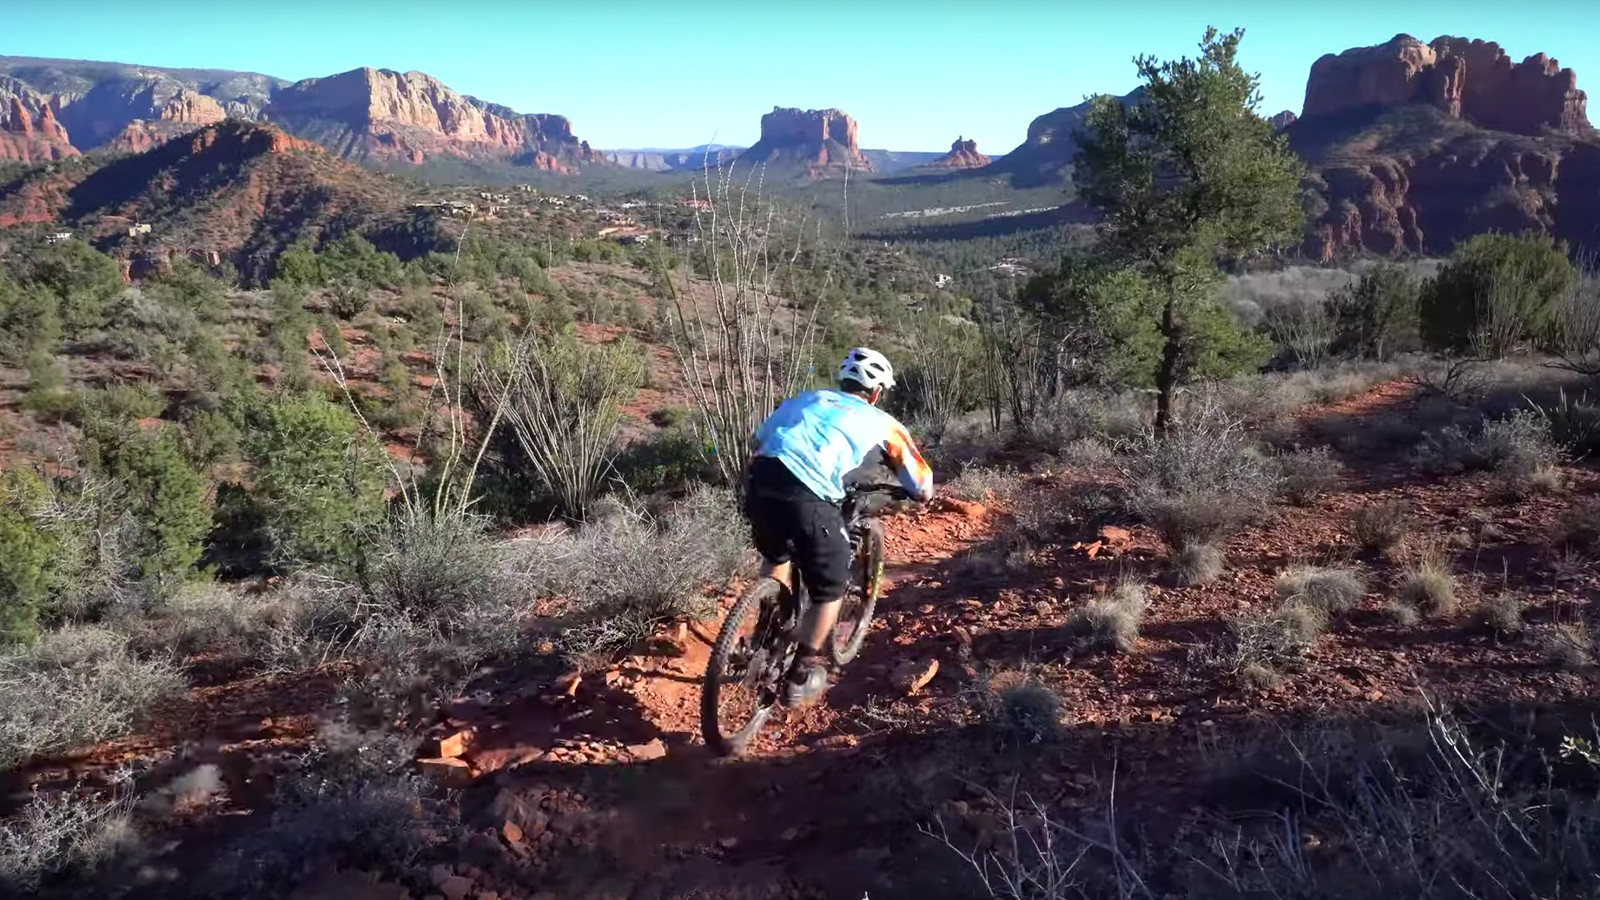 Enter Vital's Contest to Shred the Fast and Beautiful Ridge Trail in Sedona, AZ